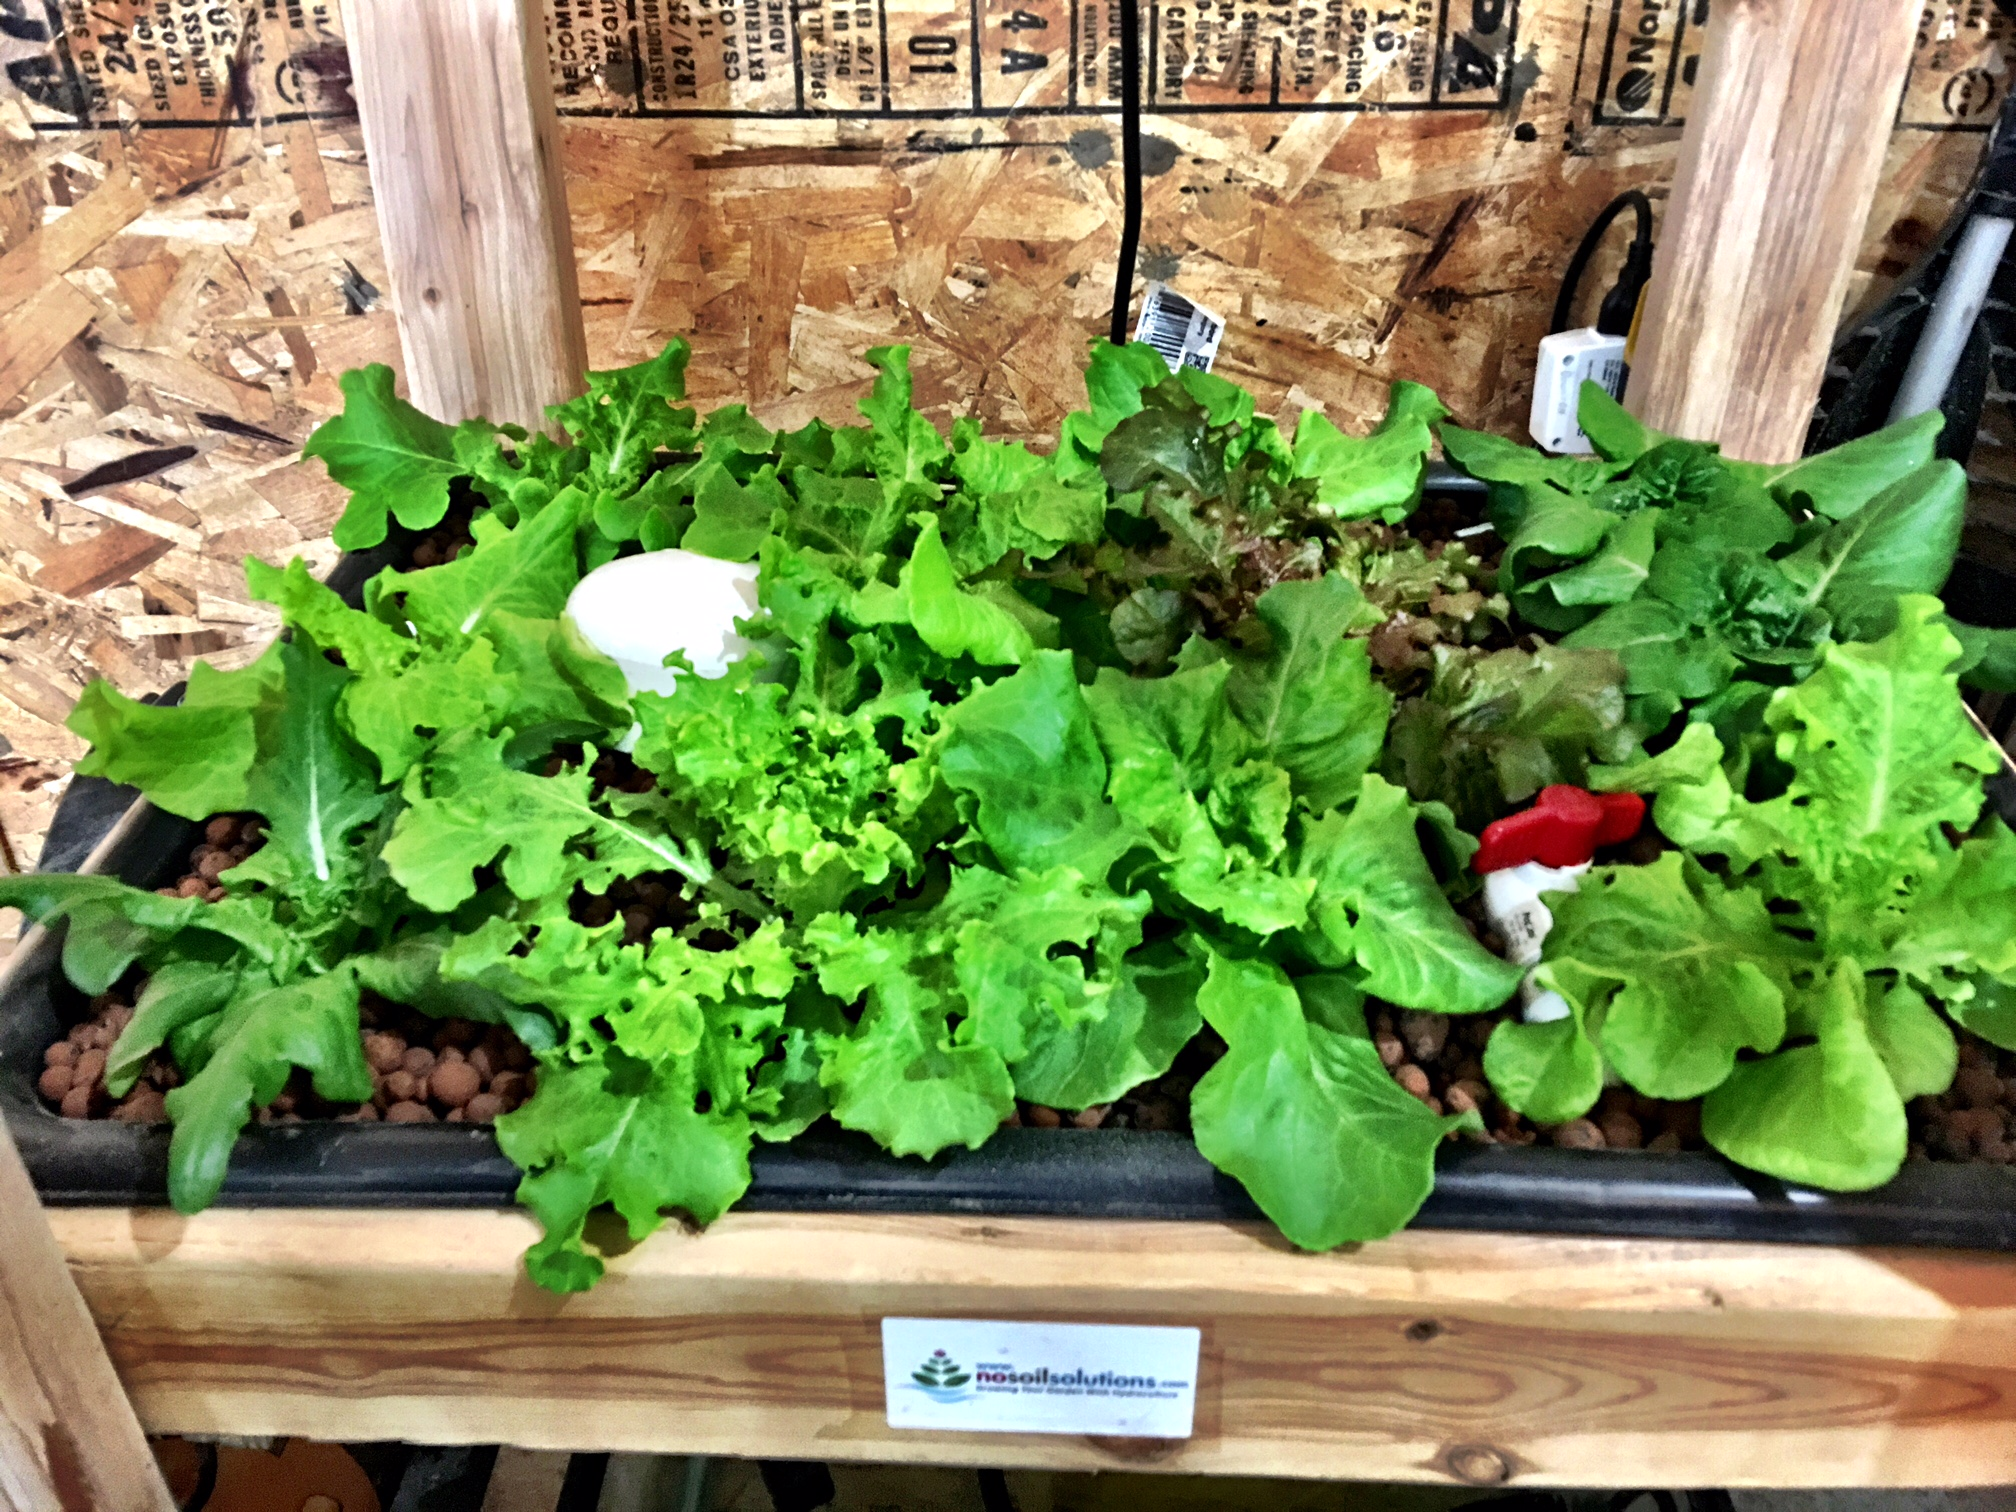 What Is Ebb And Flow Hydroponics? - NoSoilSolutions